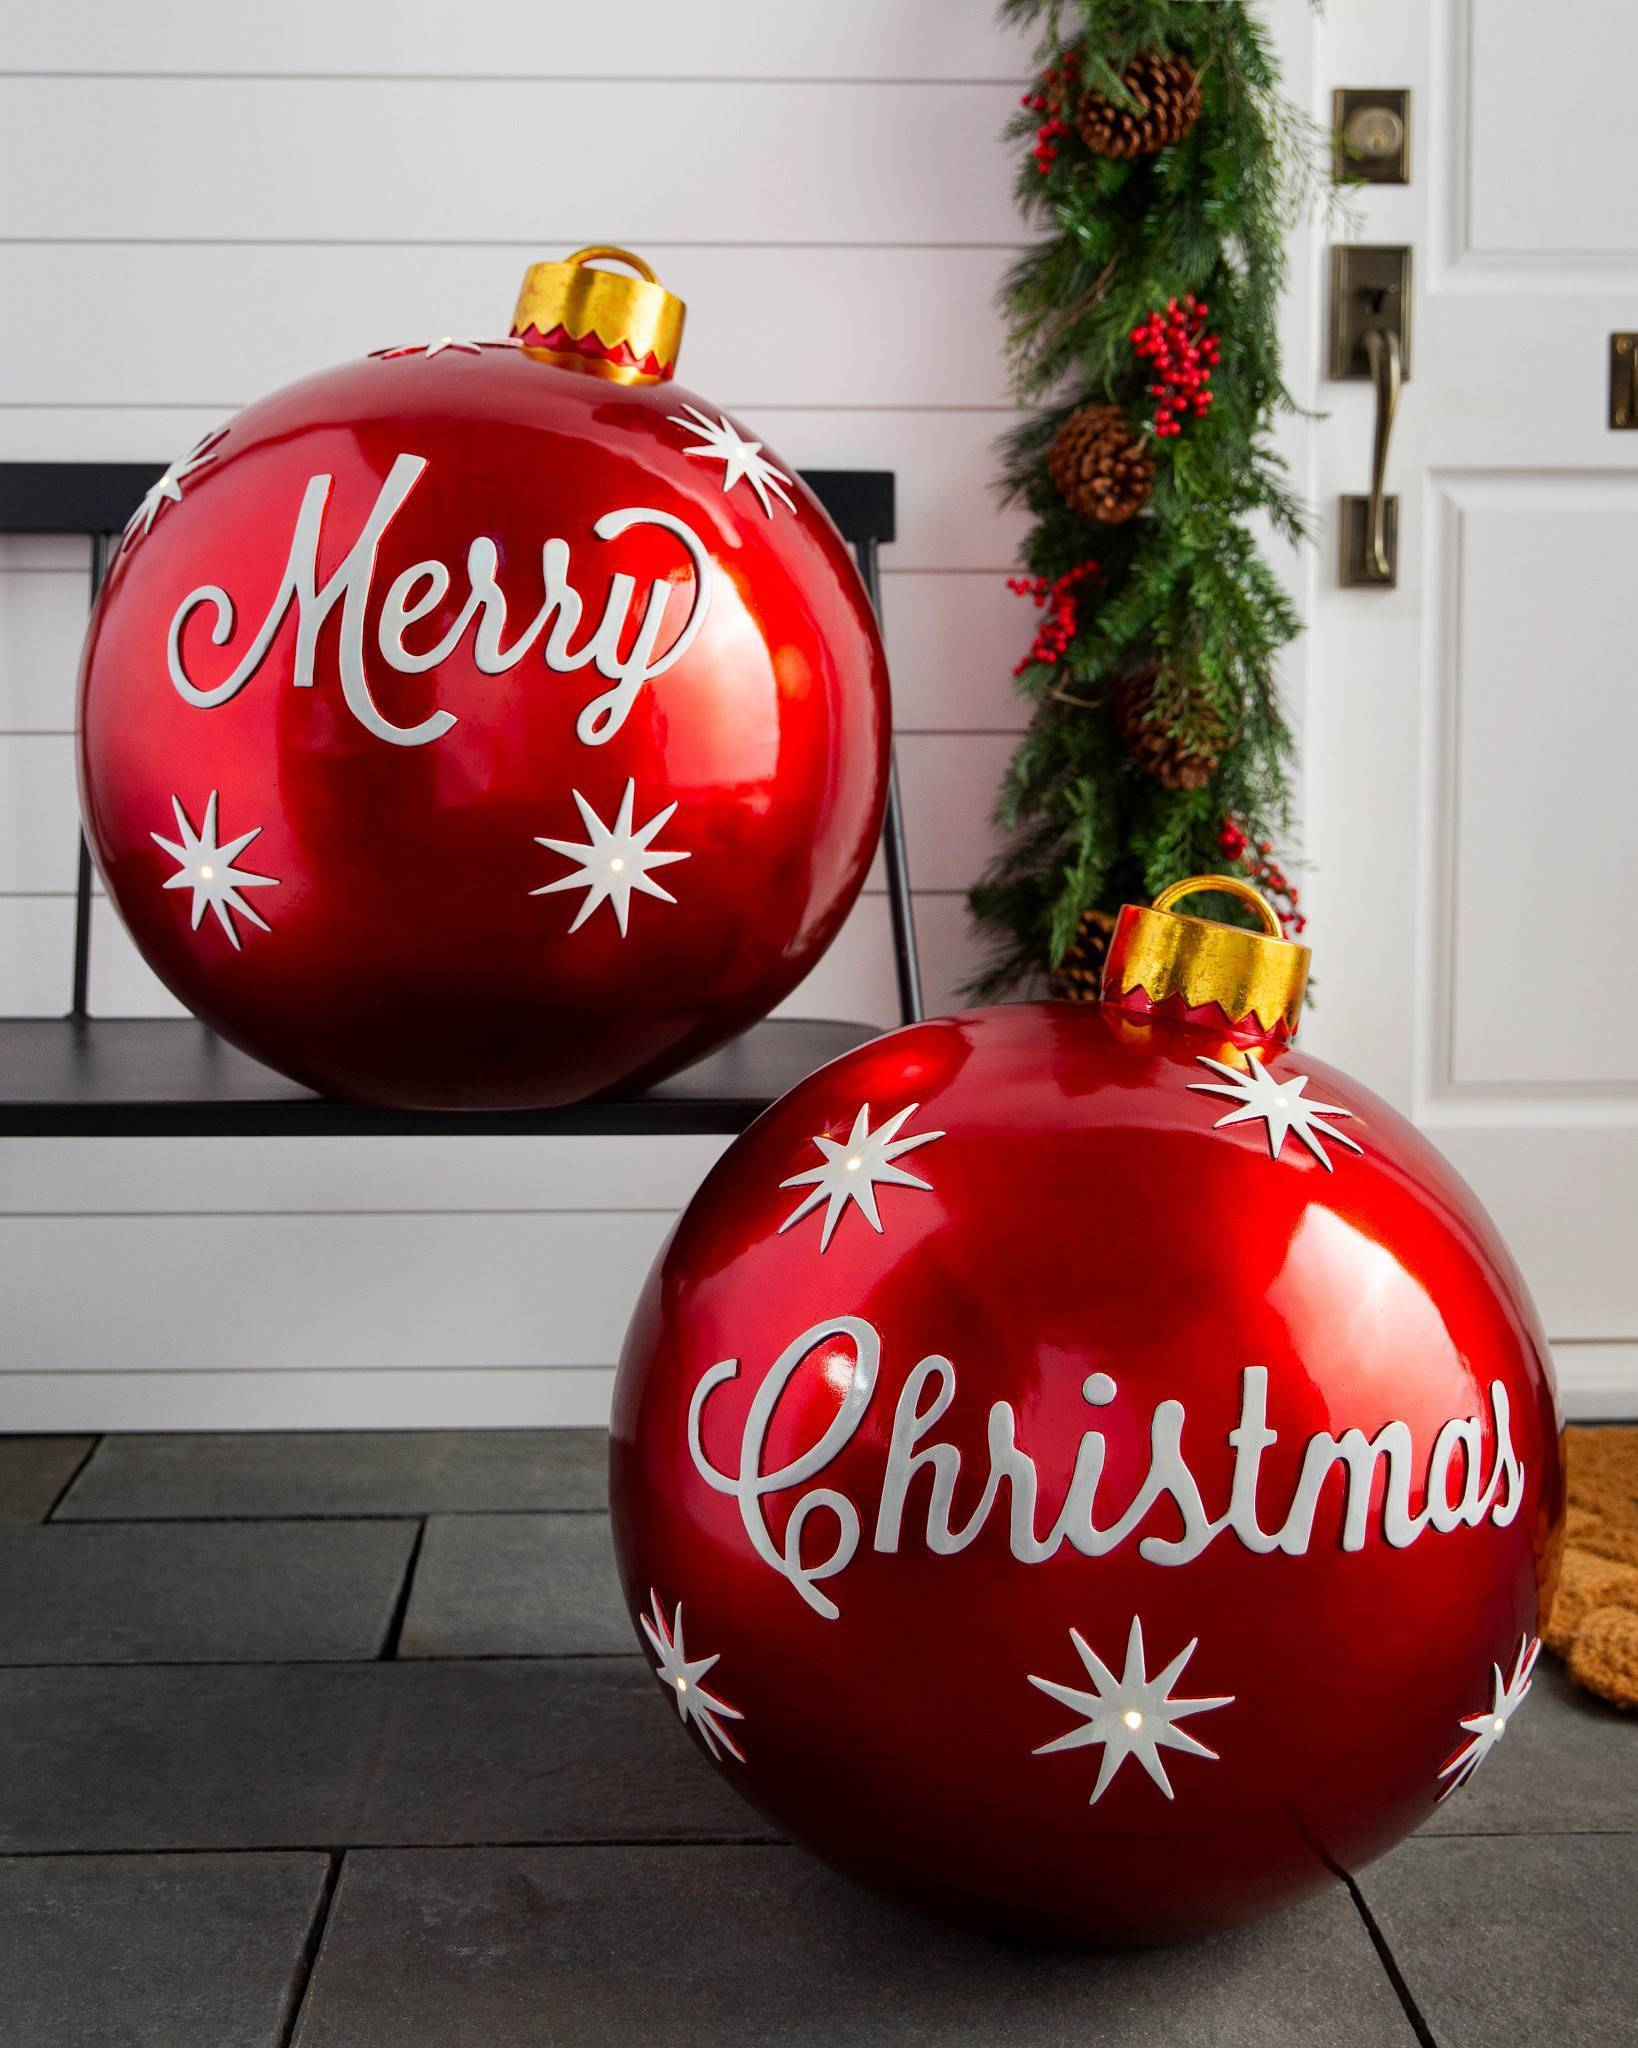 Merry Christmas-Outdoor Christmas Inflated Decorations